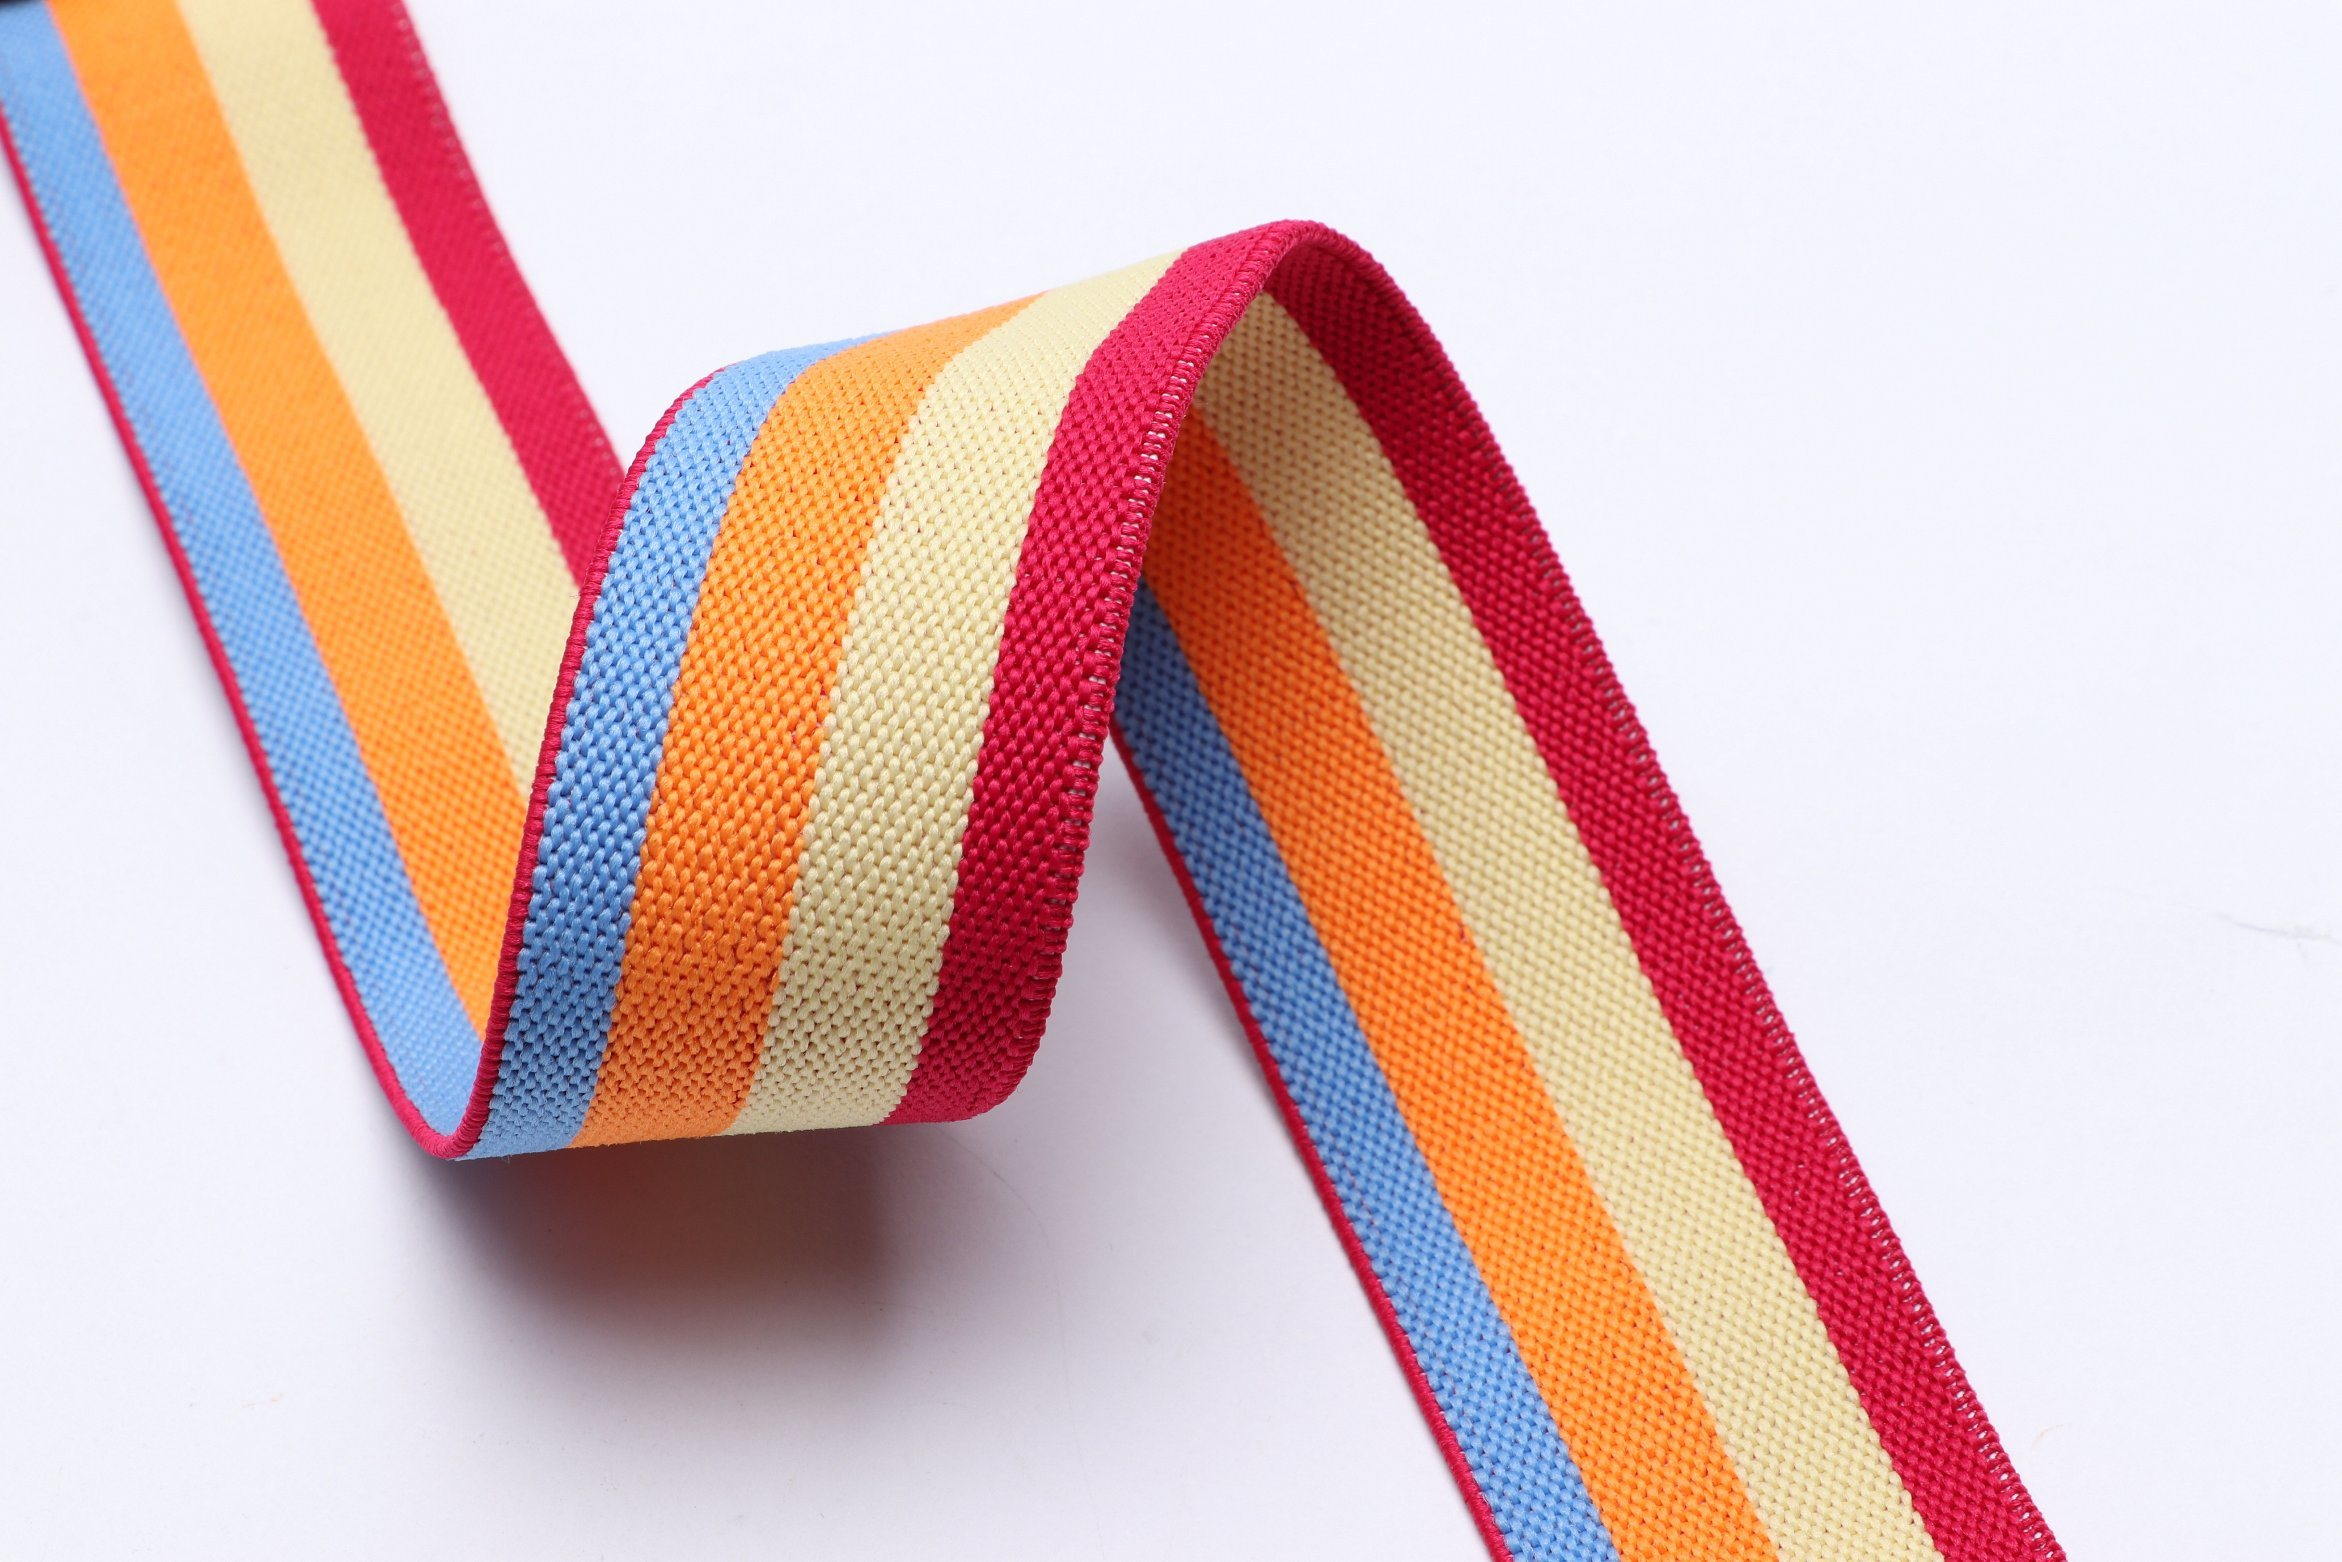 Striped-Elastic-Tape-for-Fashion-and-Garment-Accessories-1501-81A-